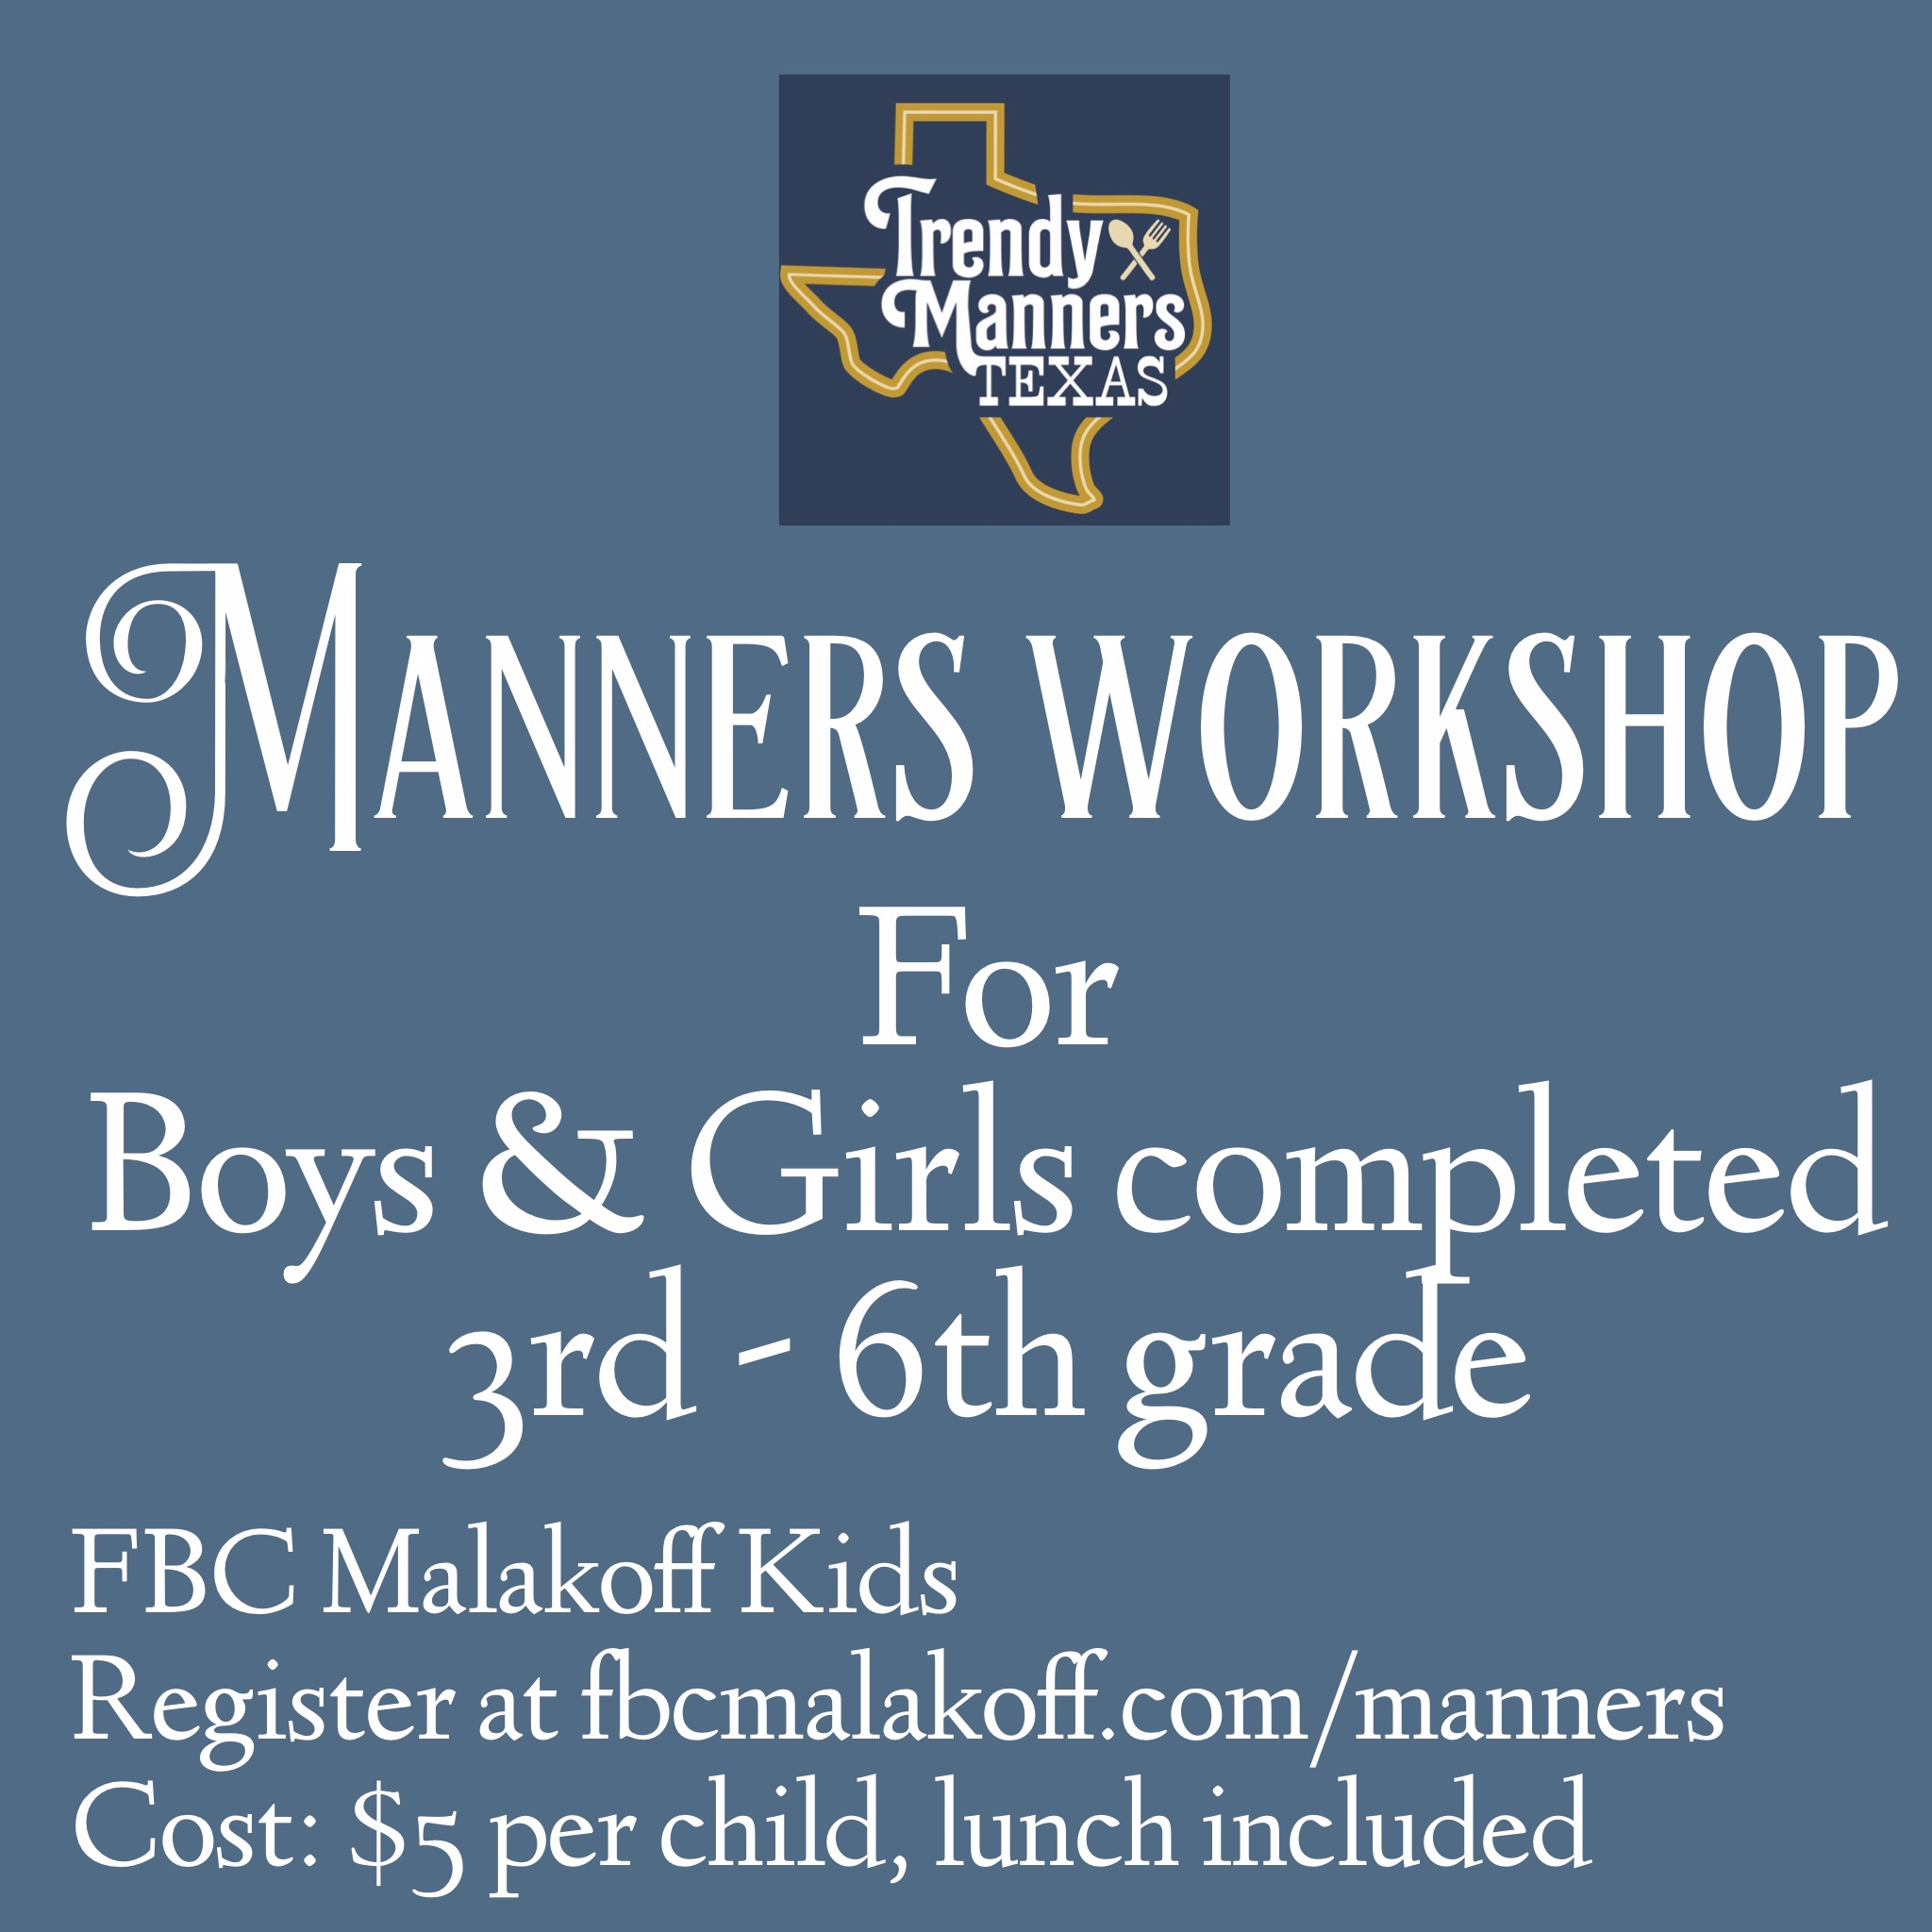 Join us for a Manners Workshop with Trendy Manners of Texas.  Trendy Manners Texas is offering a course that focus on traditional manners with a trendy, modern twist! Courses feature technology etiquette, conversations, introductions, dining manners, confidence building, kindness and more! The group will also practice dining skills at a luncheon during workshop.  Tuesday July 23, 2019  FBC Malakoff 220 W Mitchum Street, Malakoff, TX 75148  Registration & Payment deadline is Sunday July 21. To register, please call the church office at 903.489.0228 or email kids@fbcmalakoff.com  Cost of $5 per person includes lunch